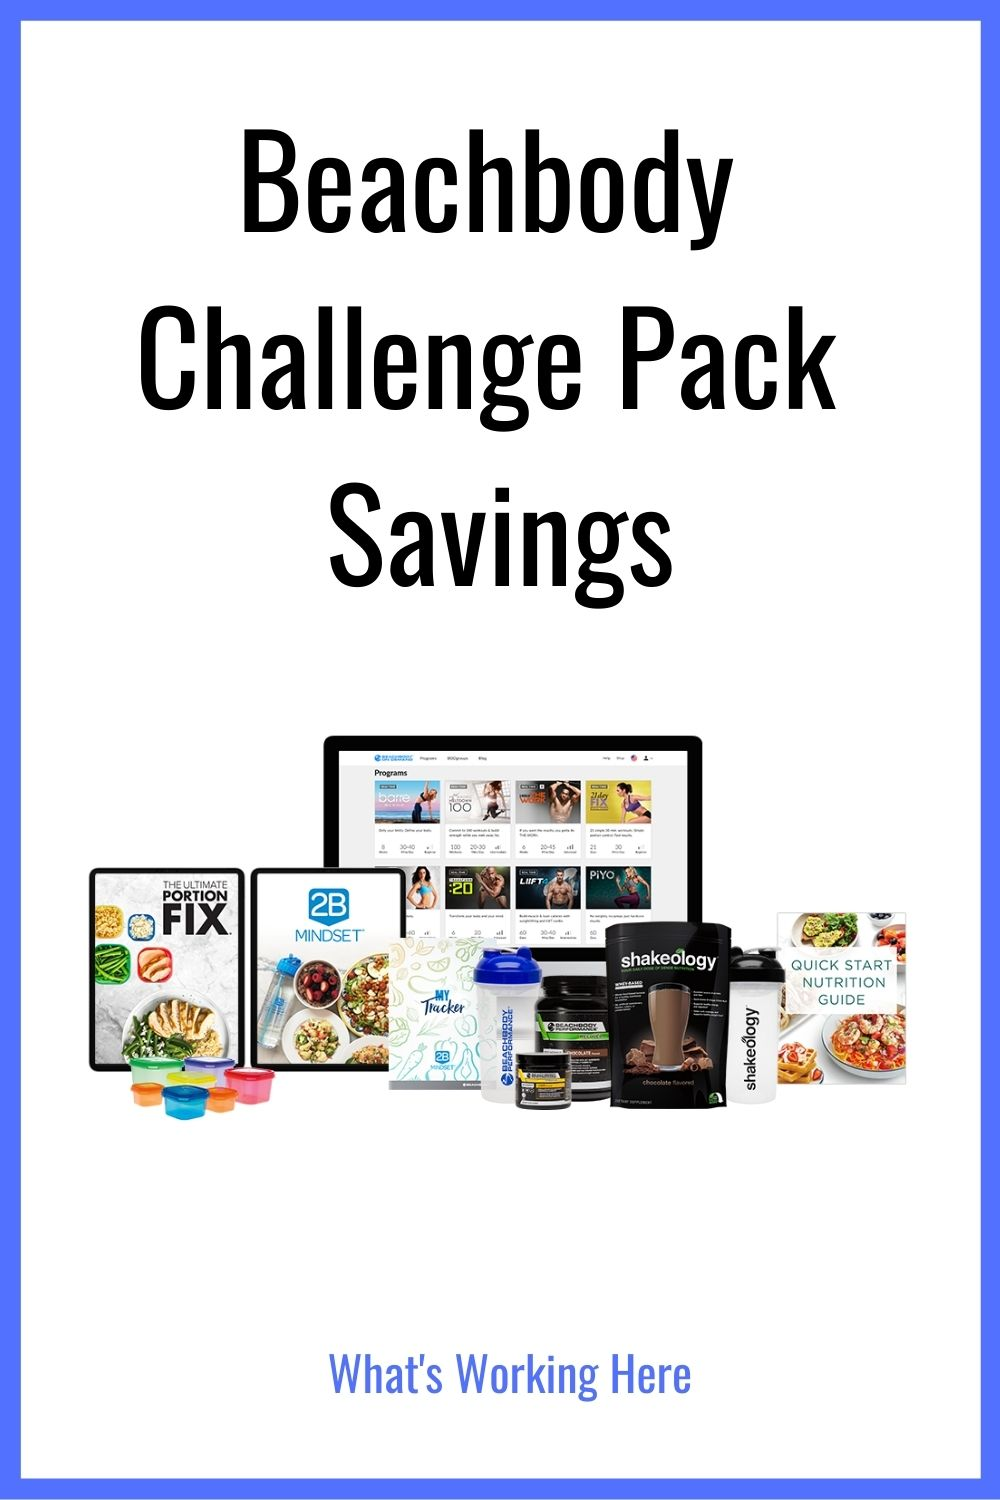 Beachbody-Challenge-Pack-Savings